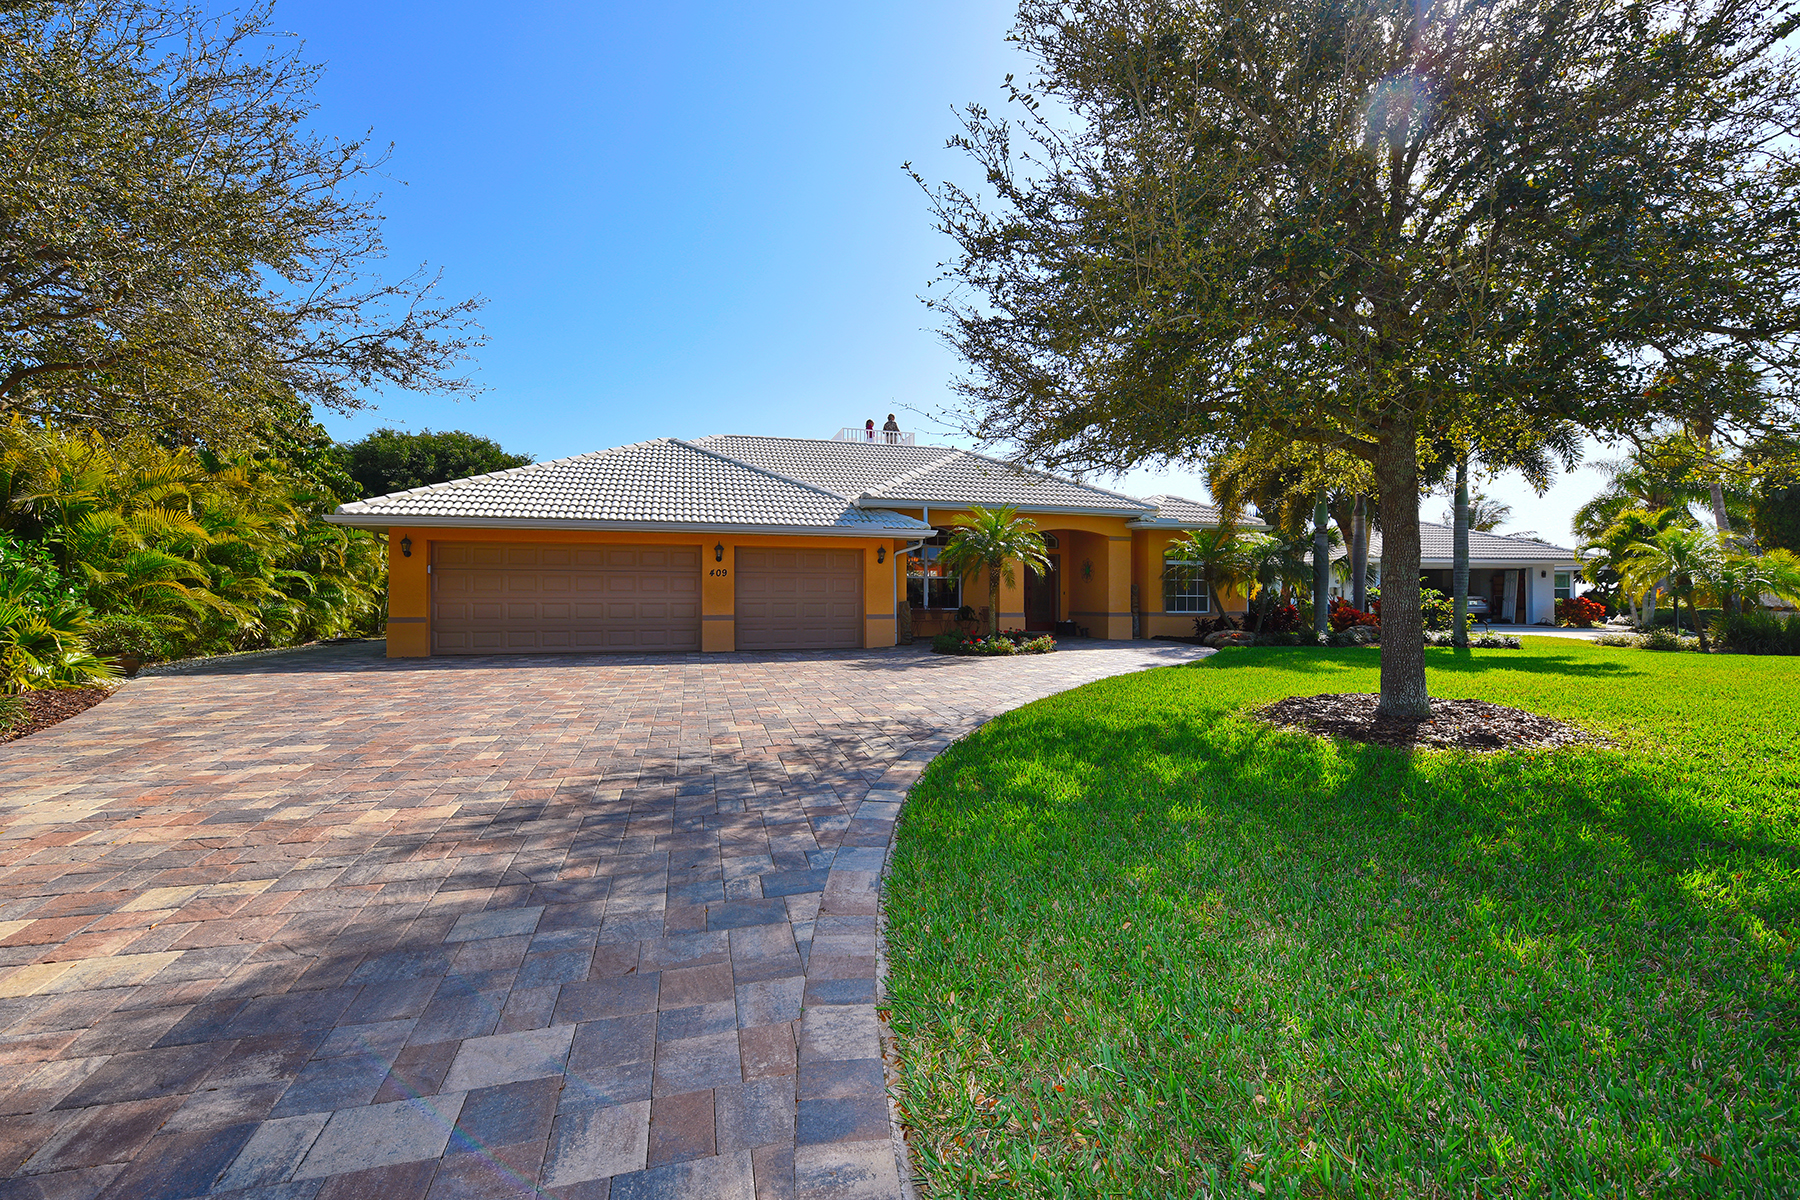 Single Family Home for Sale at BLACKBURN SHORES 409 Waterside Ln Nokomis, Florida 34275 United States